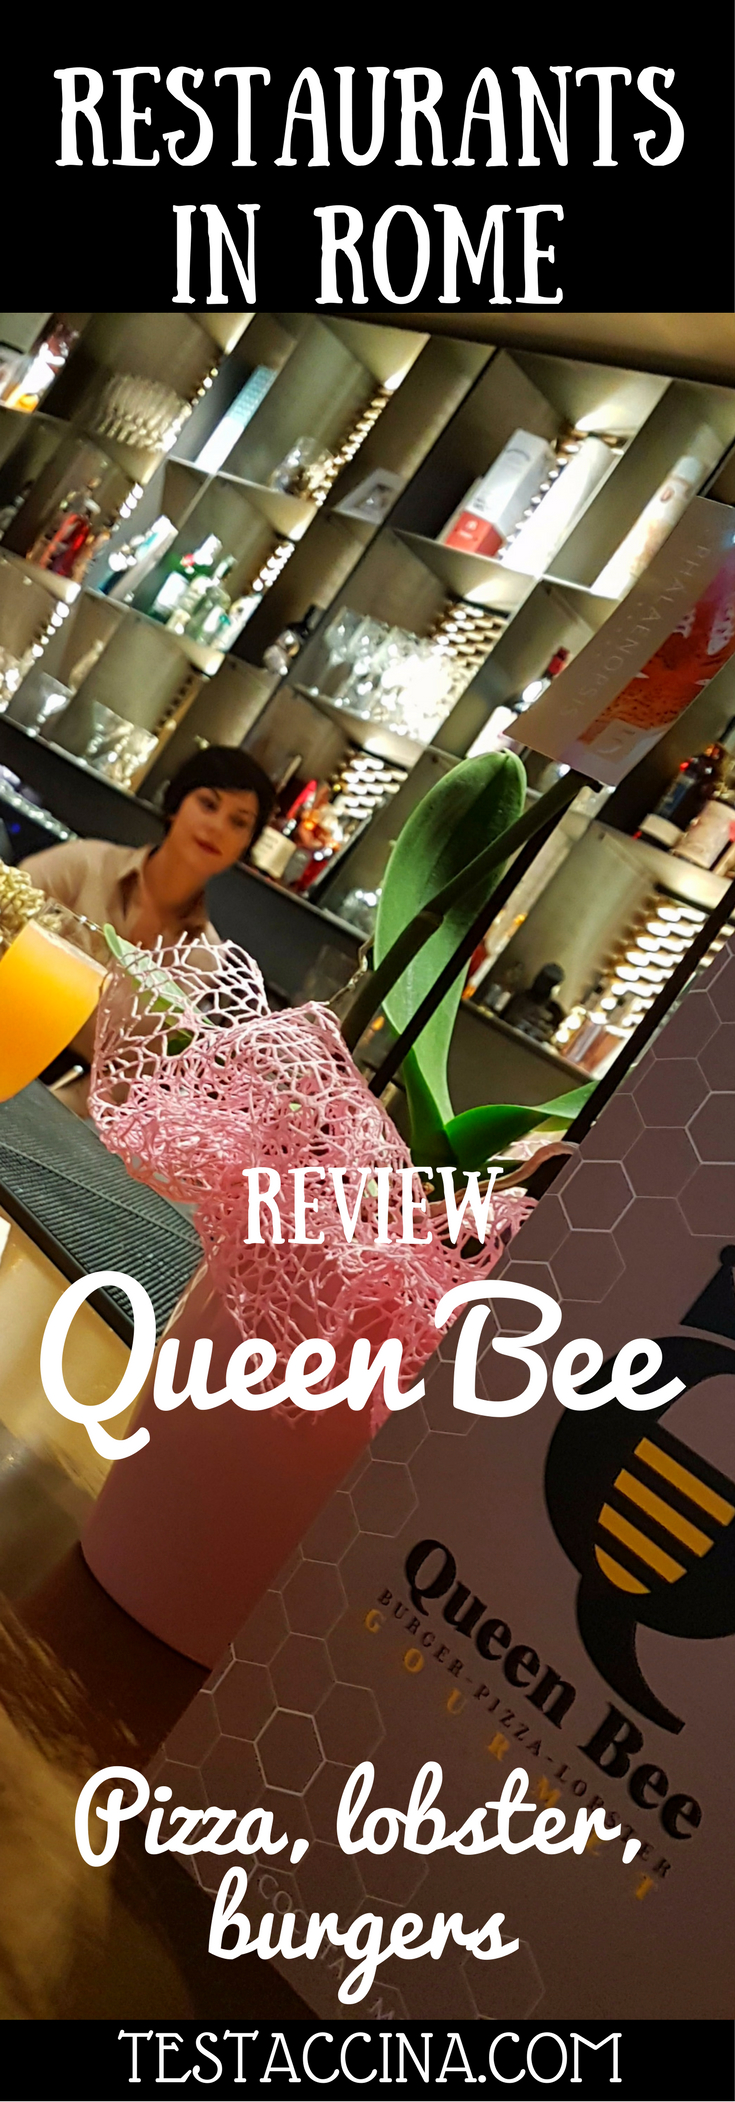 Queen Bee Roma is a new burger, pizza and lobster restaurant in the heart of Rome, with a cocktail and champagne bar to boot. Read on for the full review!